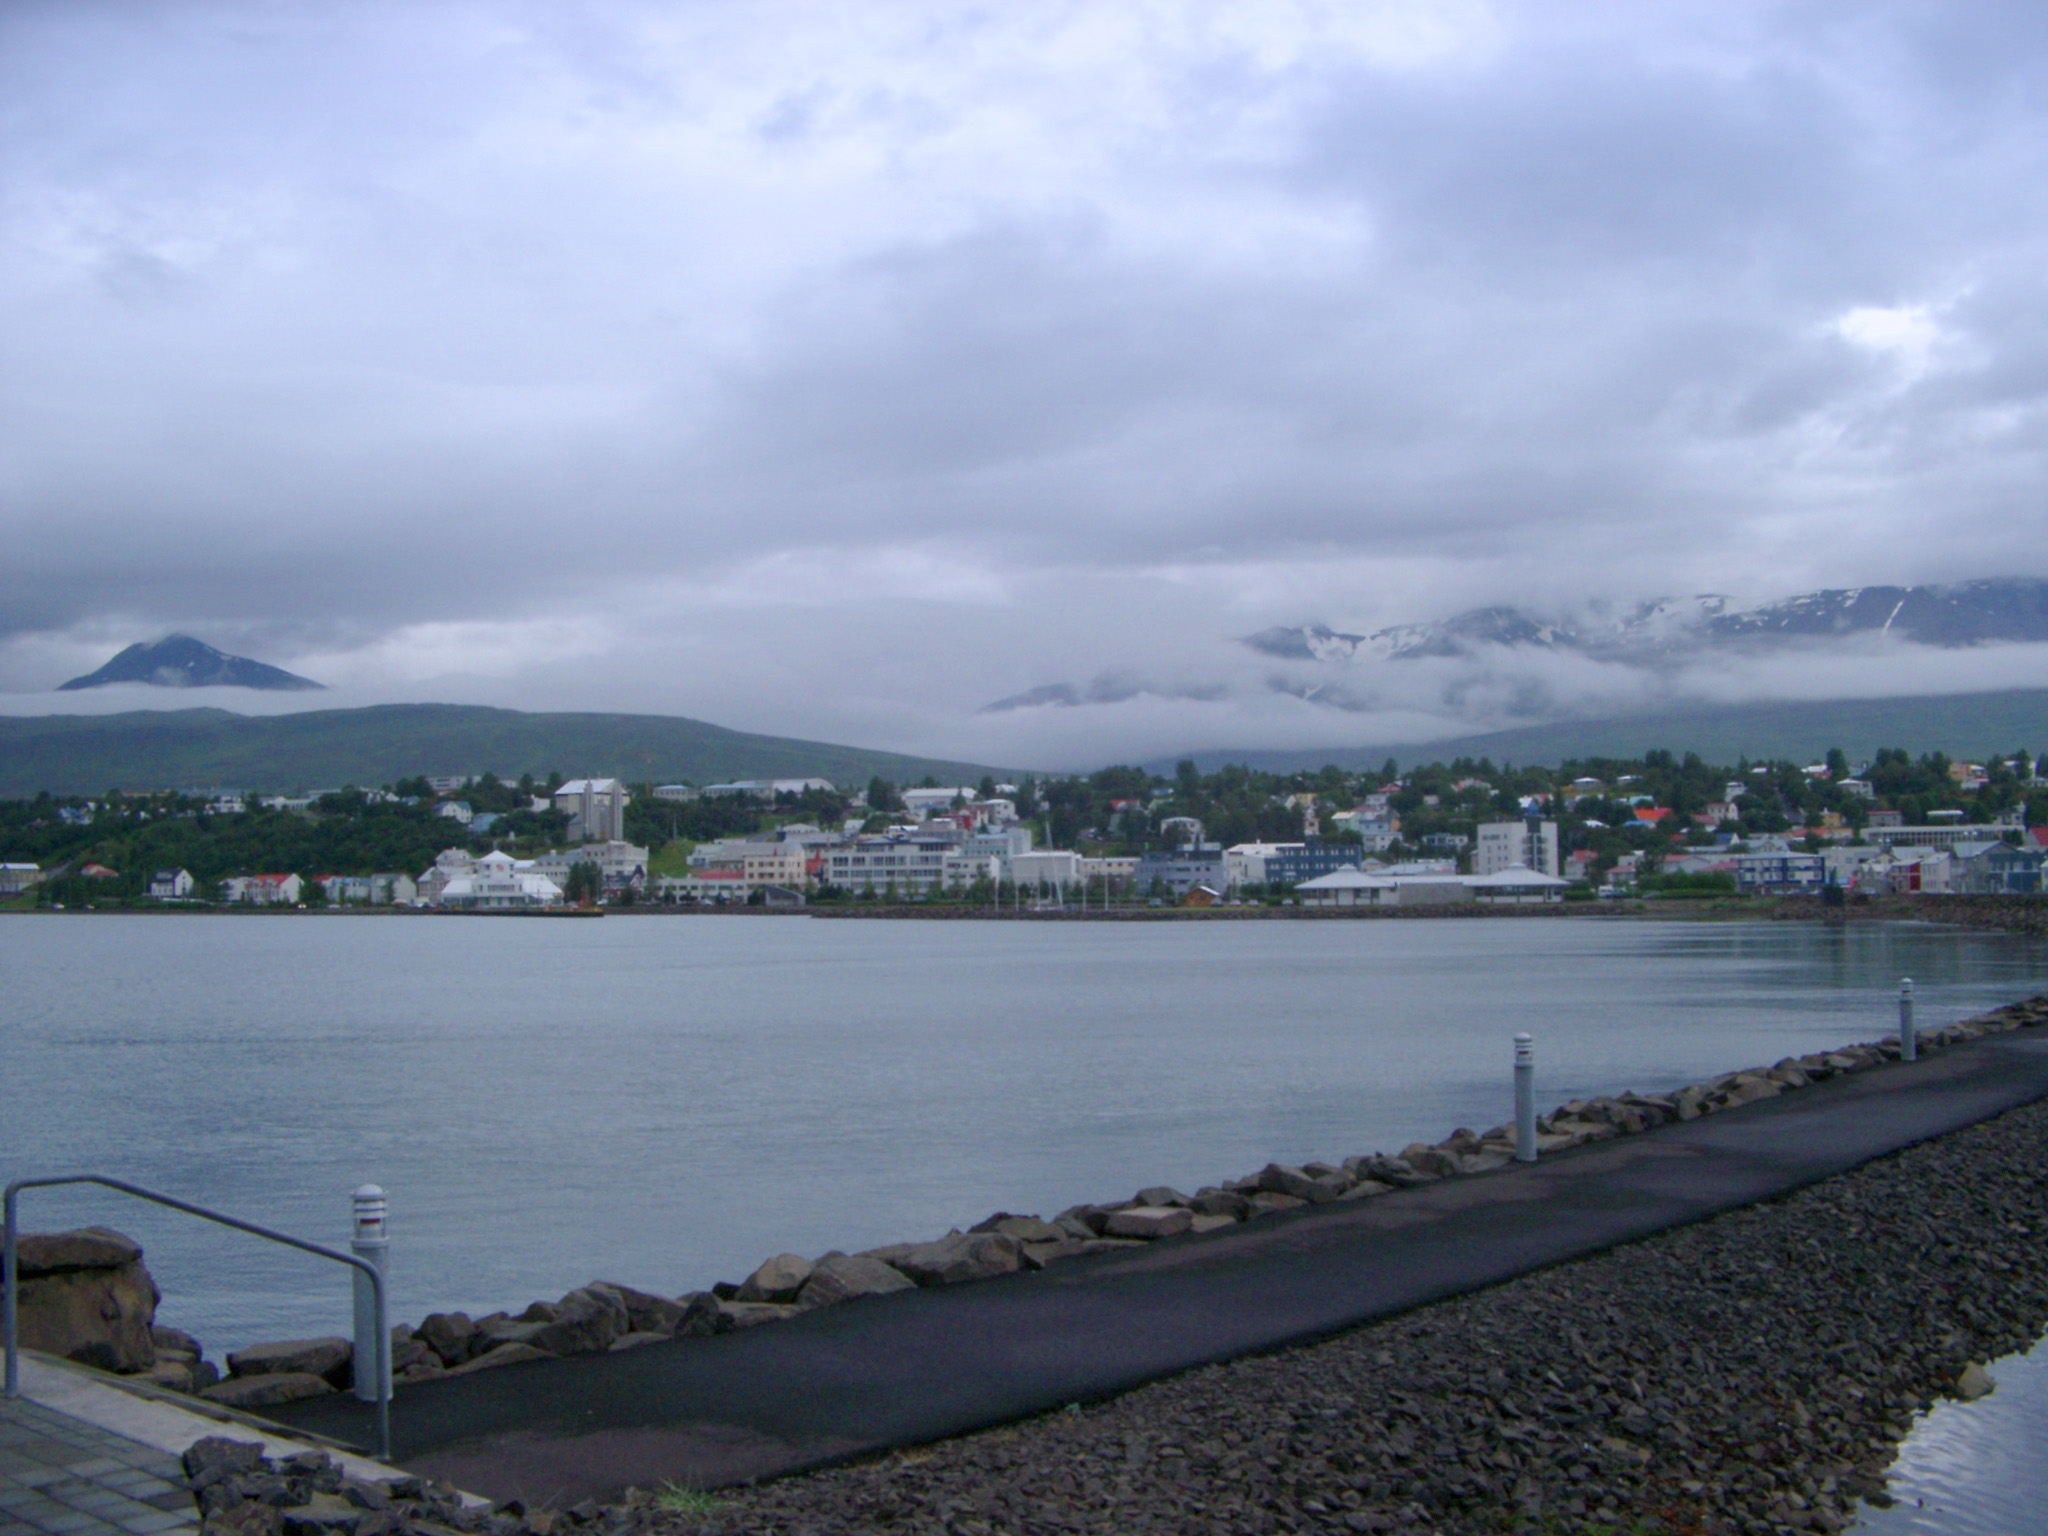 View of Akureyri from Across Eyjafjorour Fjord on Cloudy Grey Day, Iceland